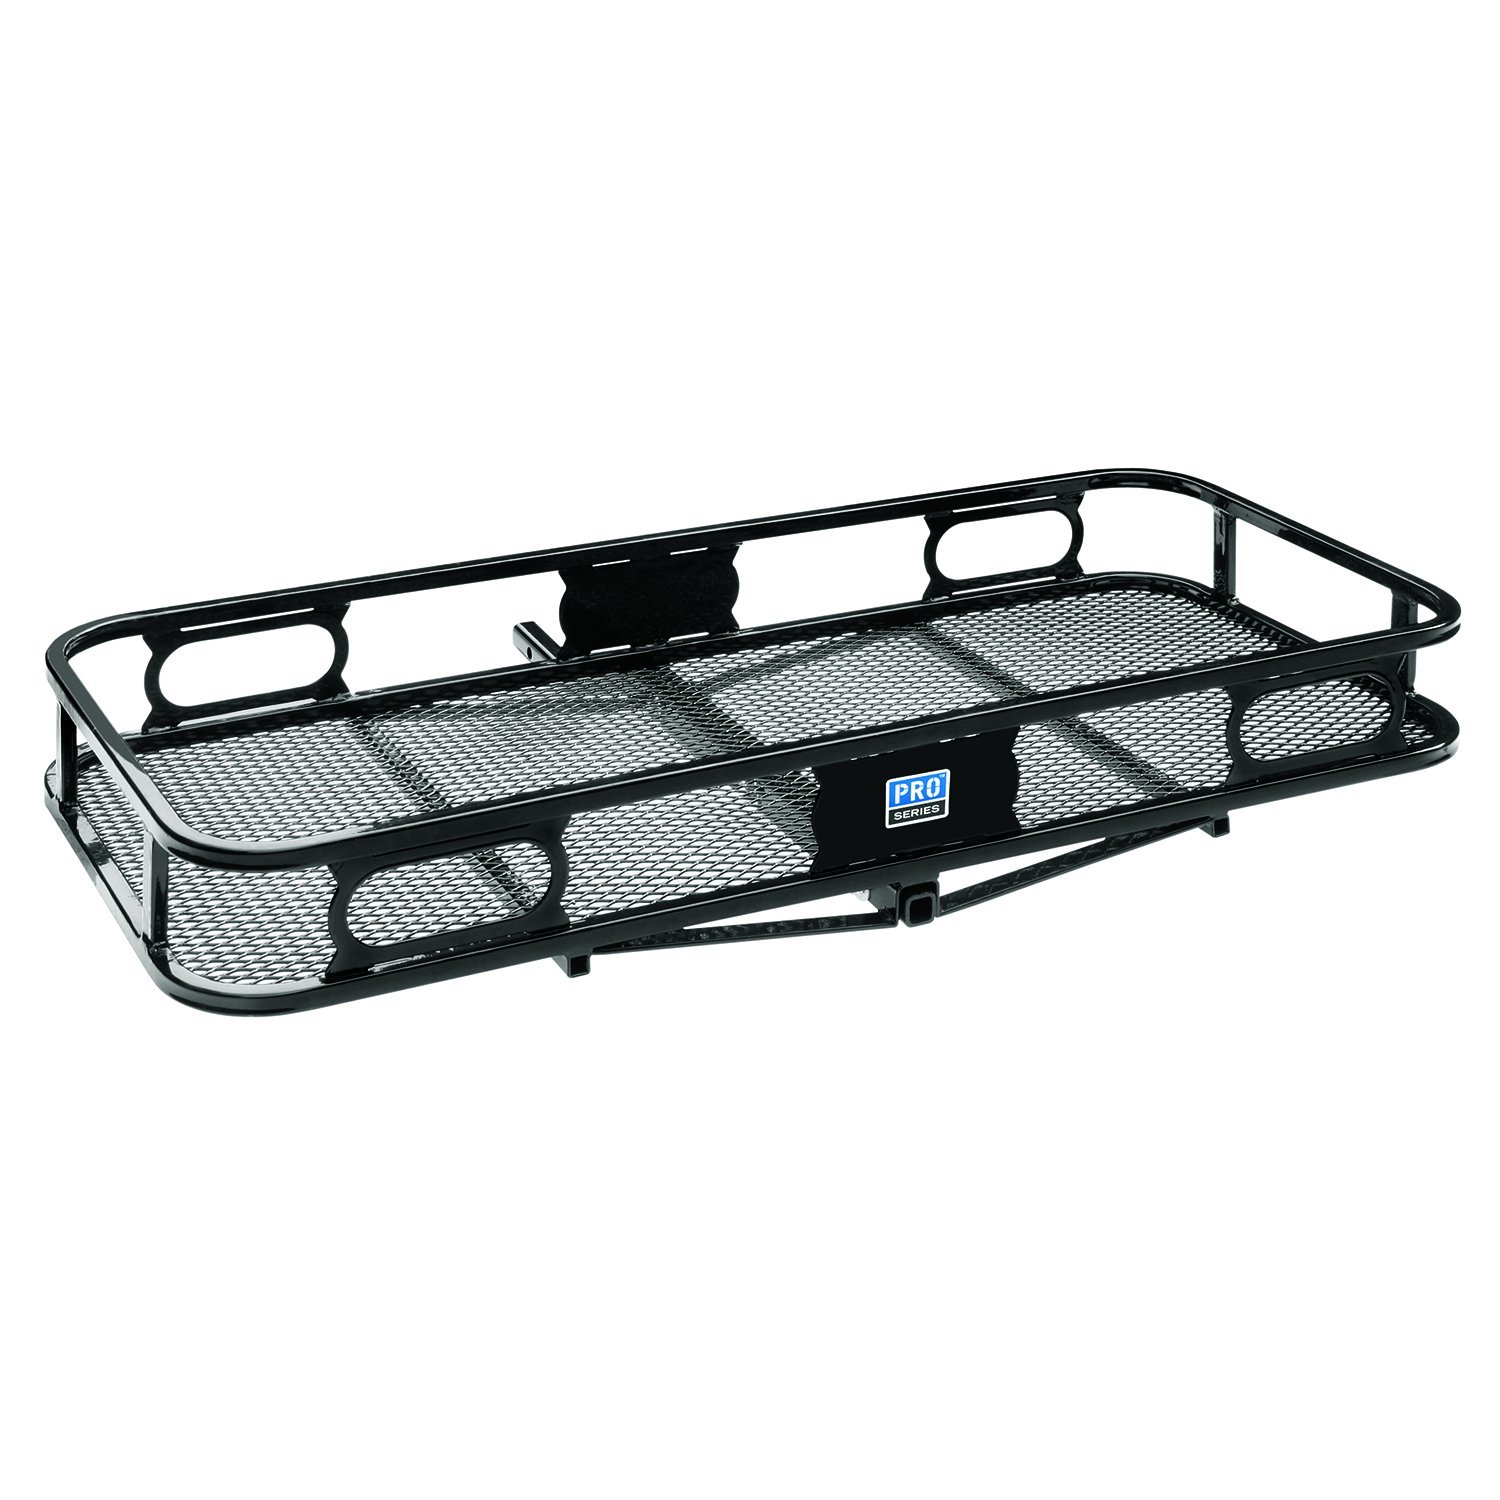 Pro Series 63154 Black 48' x 20' Hitch Mounted Cargo Carrier